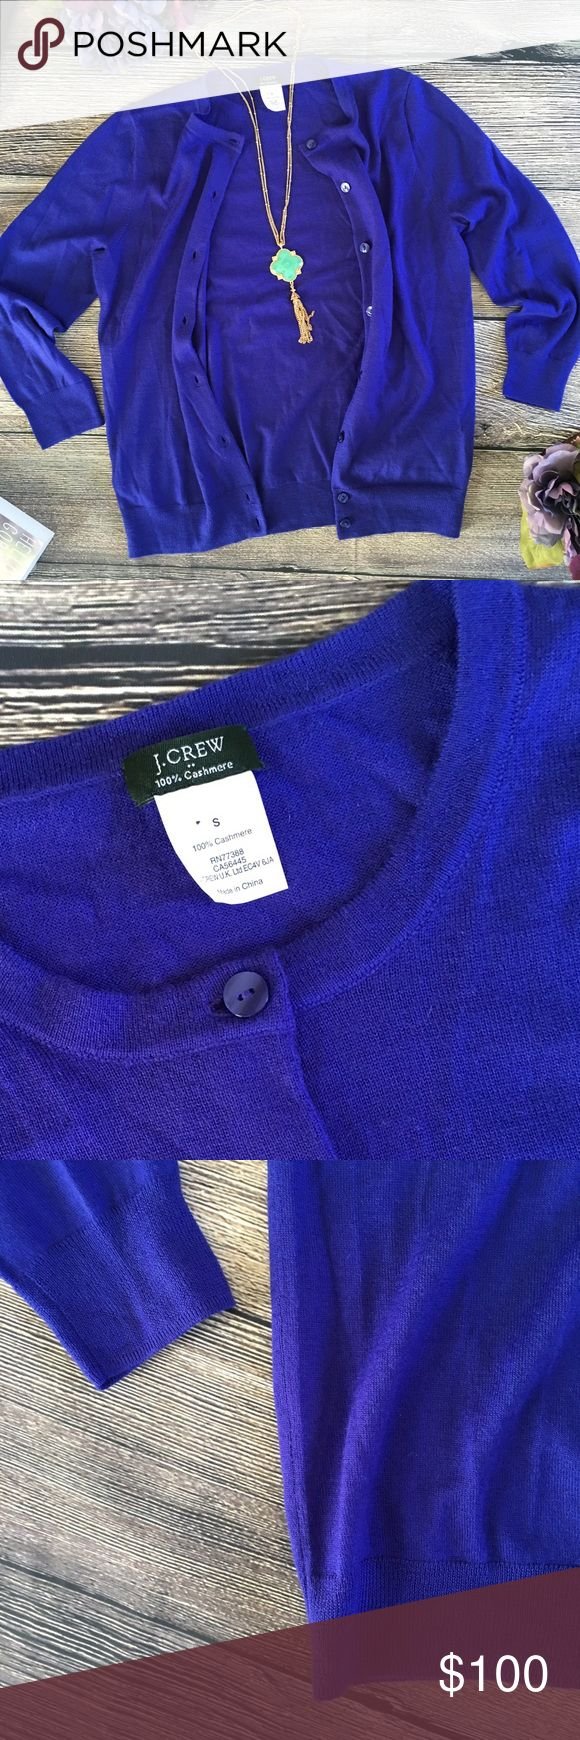 J. Crew 100% Cashmere Cardigan Byzantine Blue Maggie. She's a beautiful lightweight 100% cashmere with a soft handfeel that is so luxurious. She's a classic that will never go out of style. With a crew neckline, this cozy gal is an essential element for every closet and cashmere of this quality only gets better over time. With proper care, she will take good care of you for years to come. Wrap yourself up in her beautiful shade of Byzantine Blue. Ribbed cuff and hem. Size small. Like new…